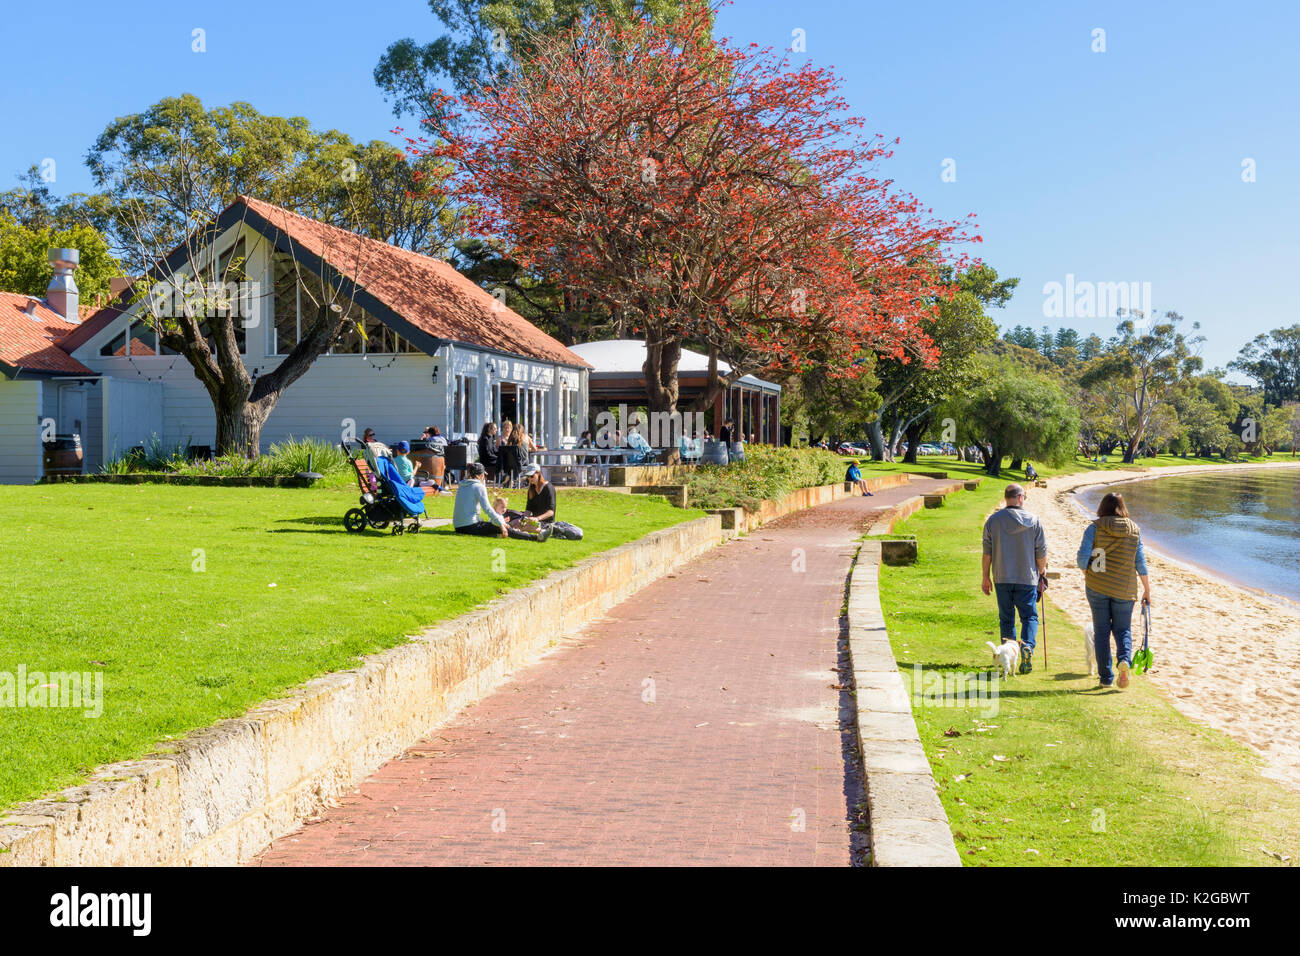 Bayside Kitchen cafe on the promenade along the Matilda Bay Reserve on the Swan River at Crawley, Perth, Western Australia - Stock Image